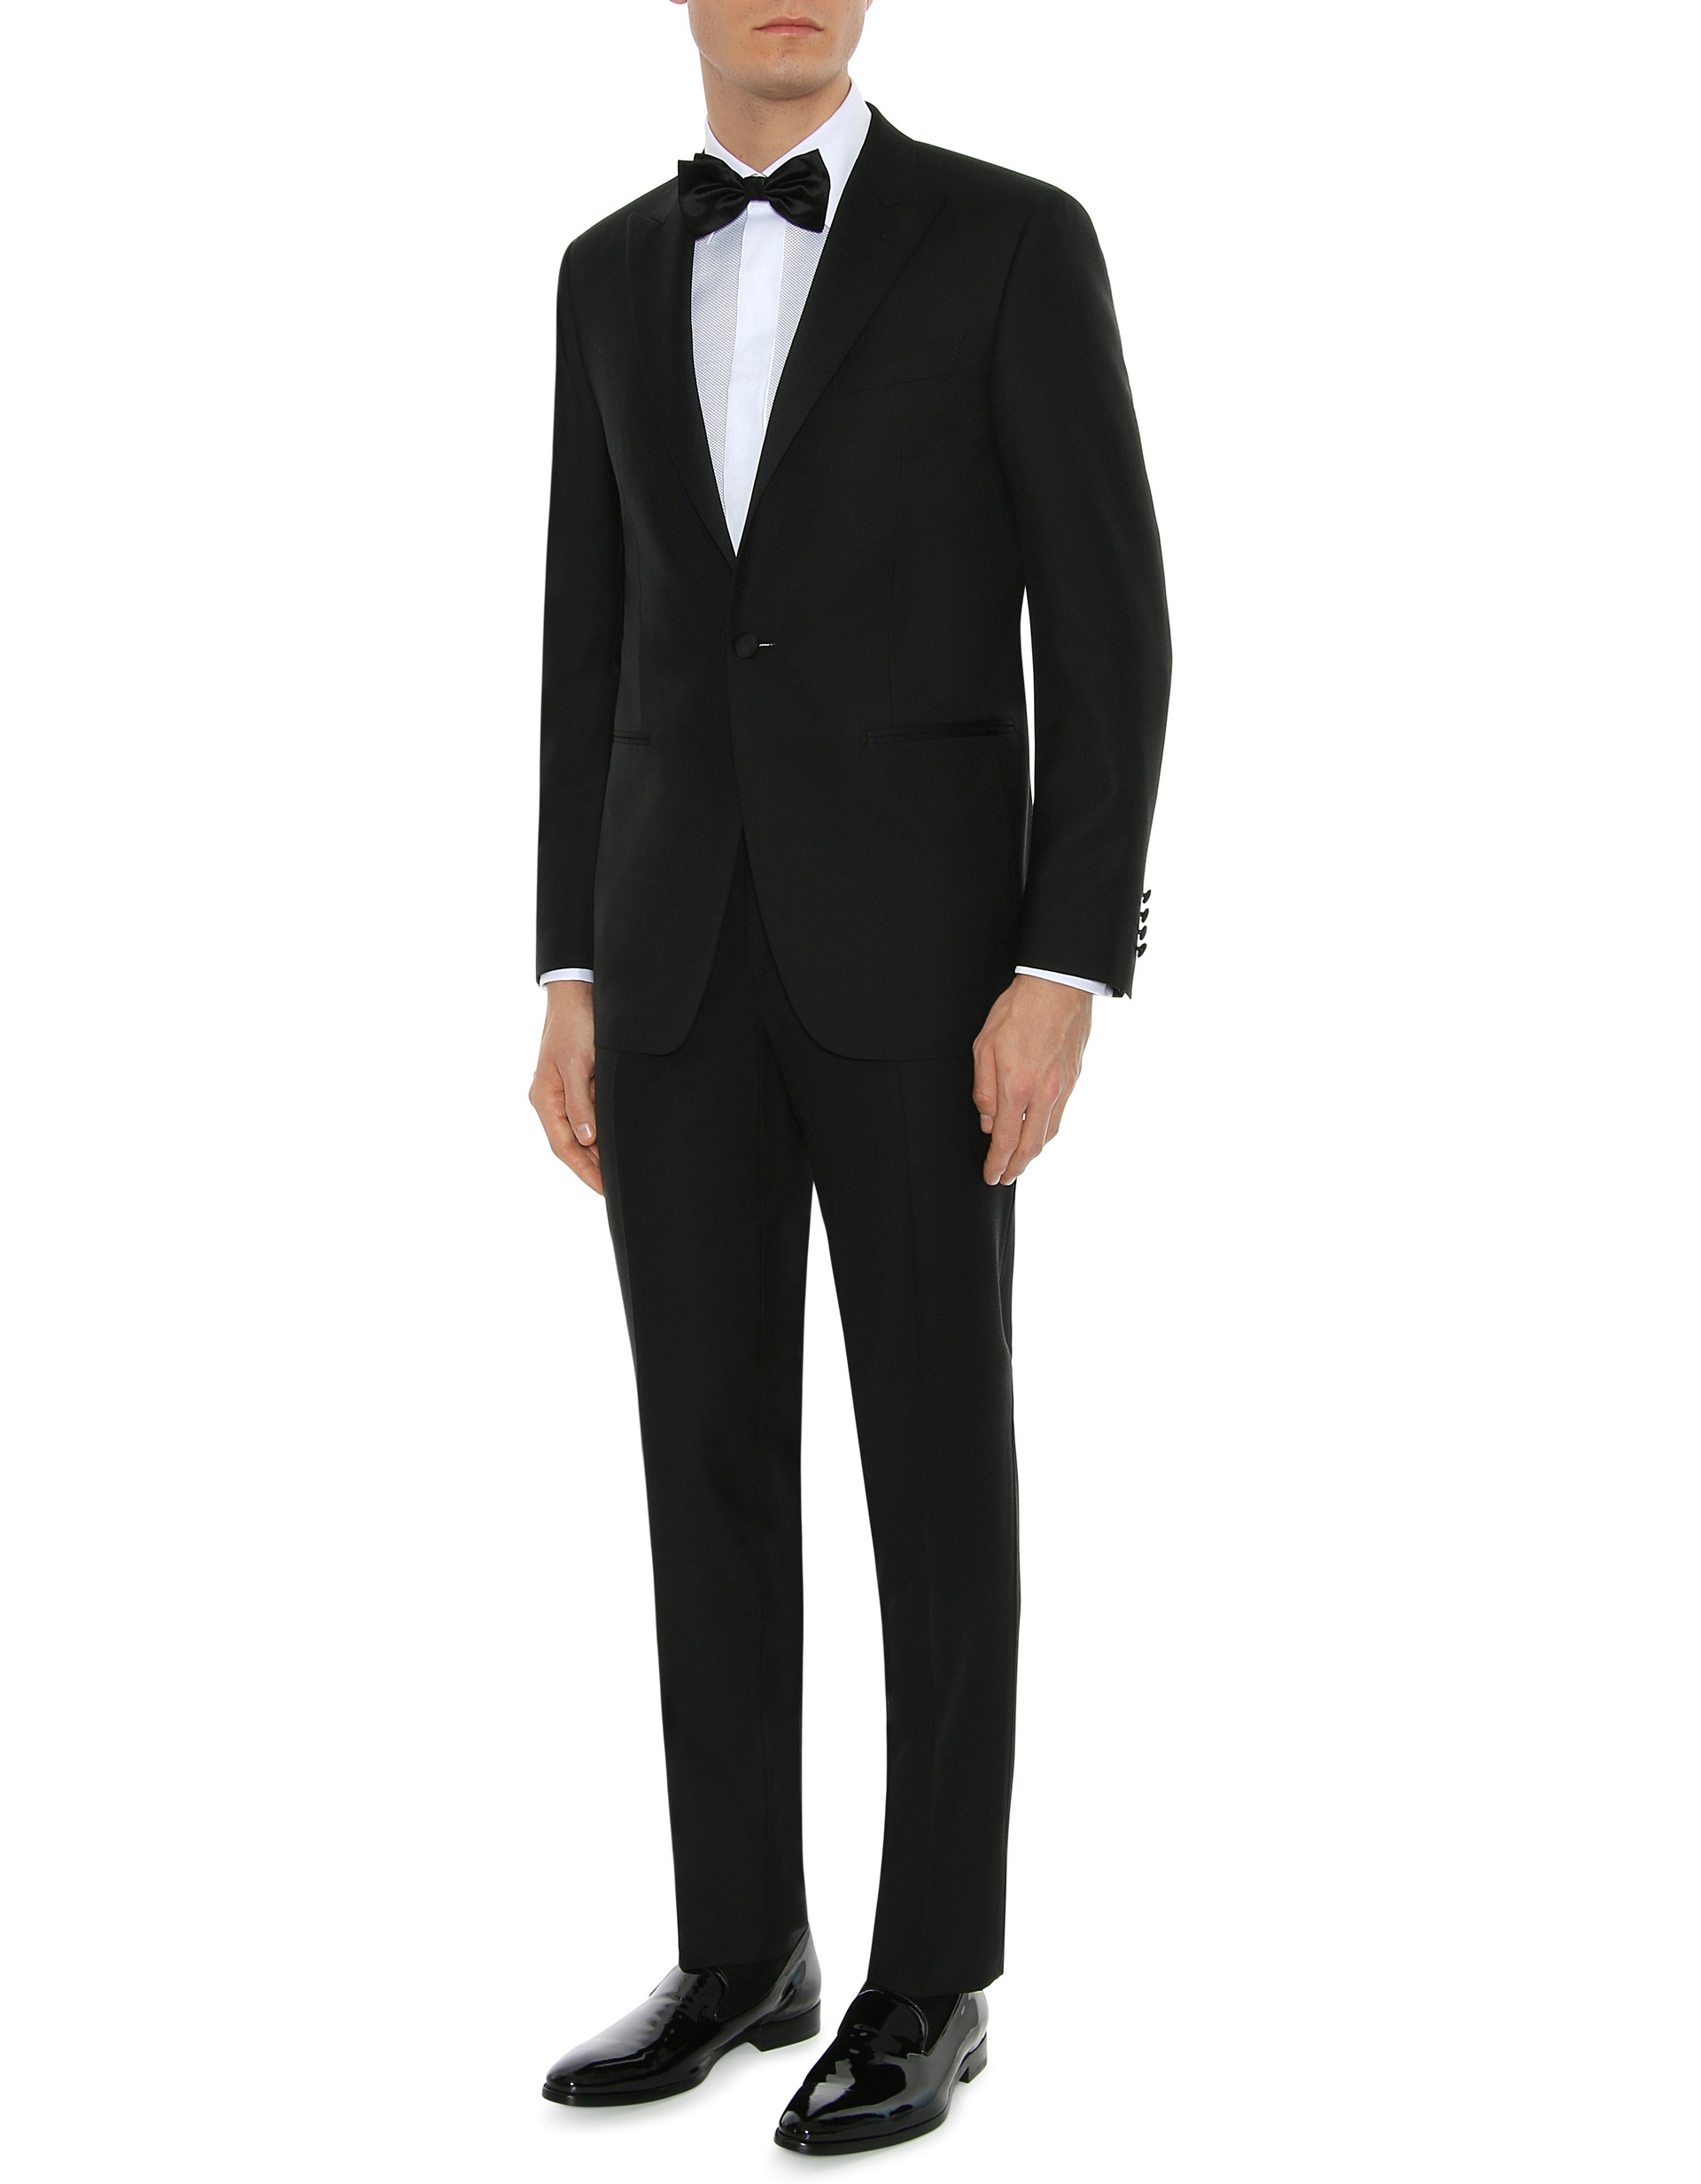 canali, suits, tuxedo, formal, menswear